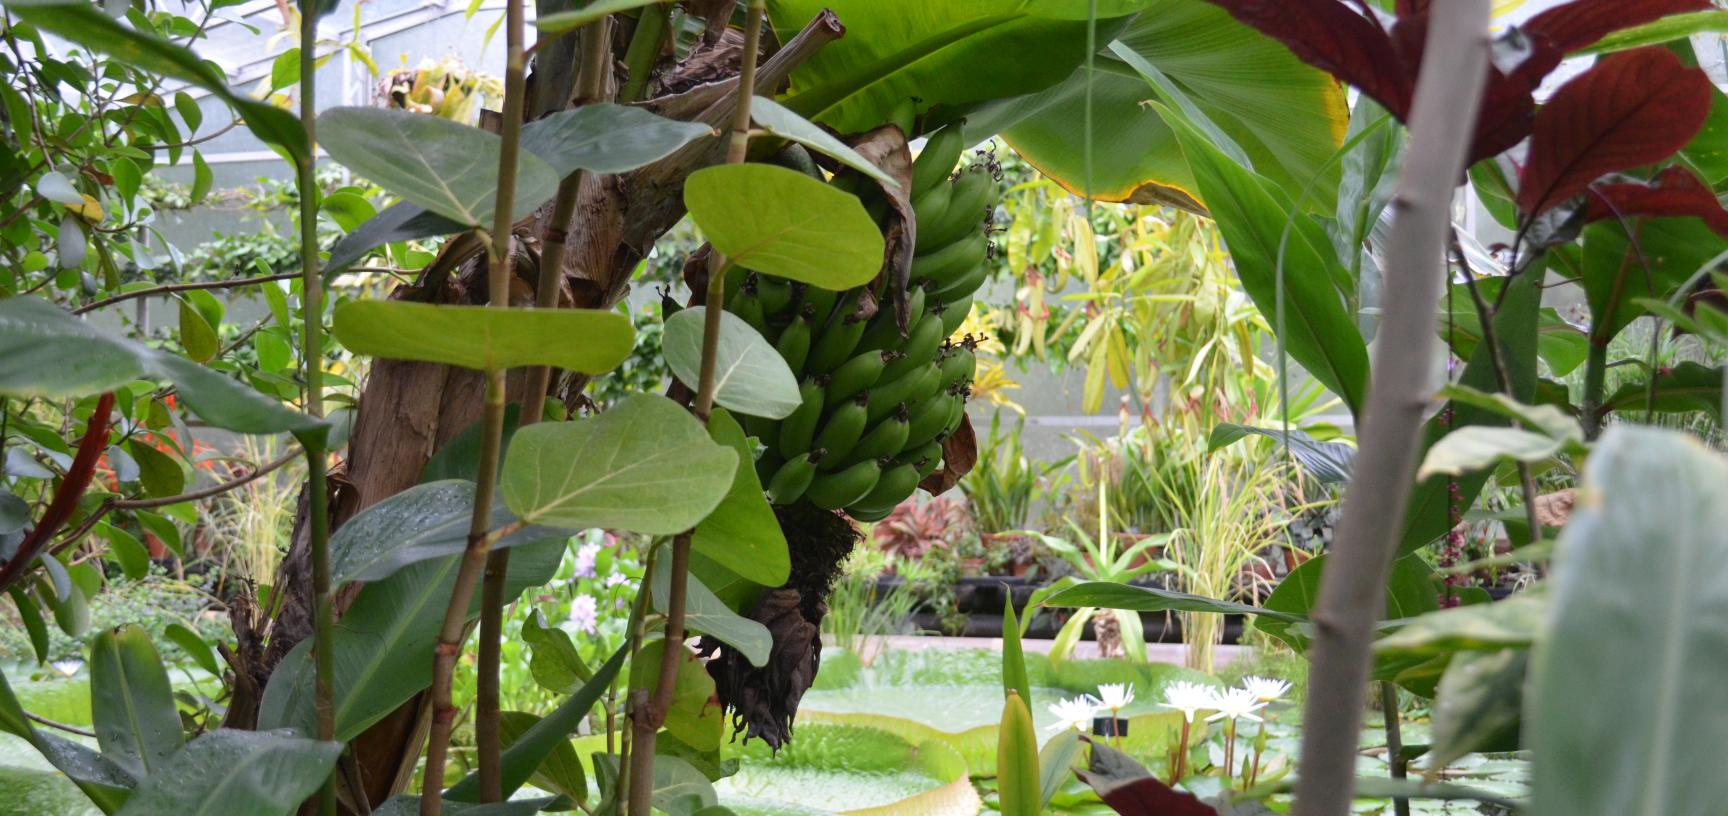 Bananas in the Lily House